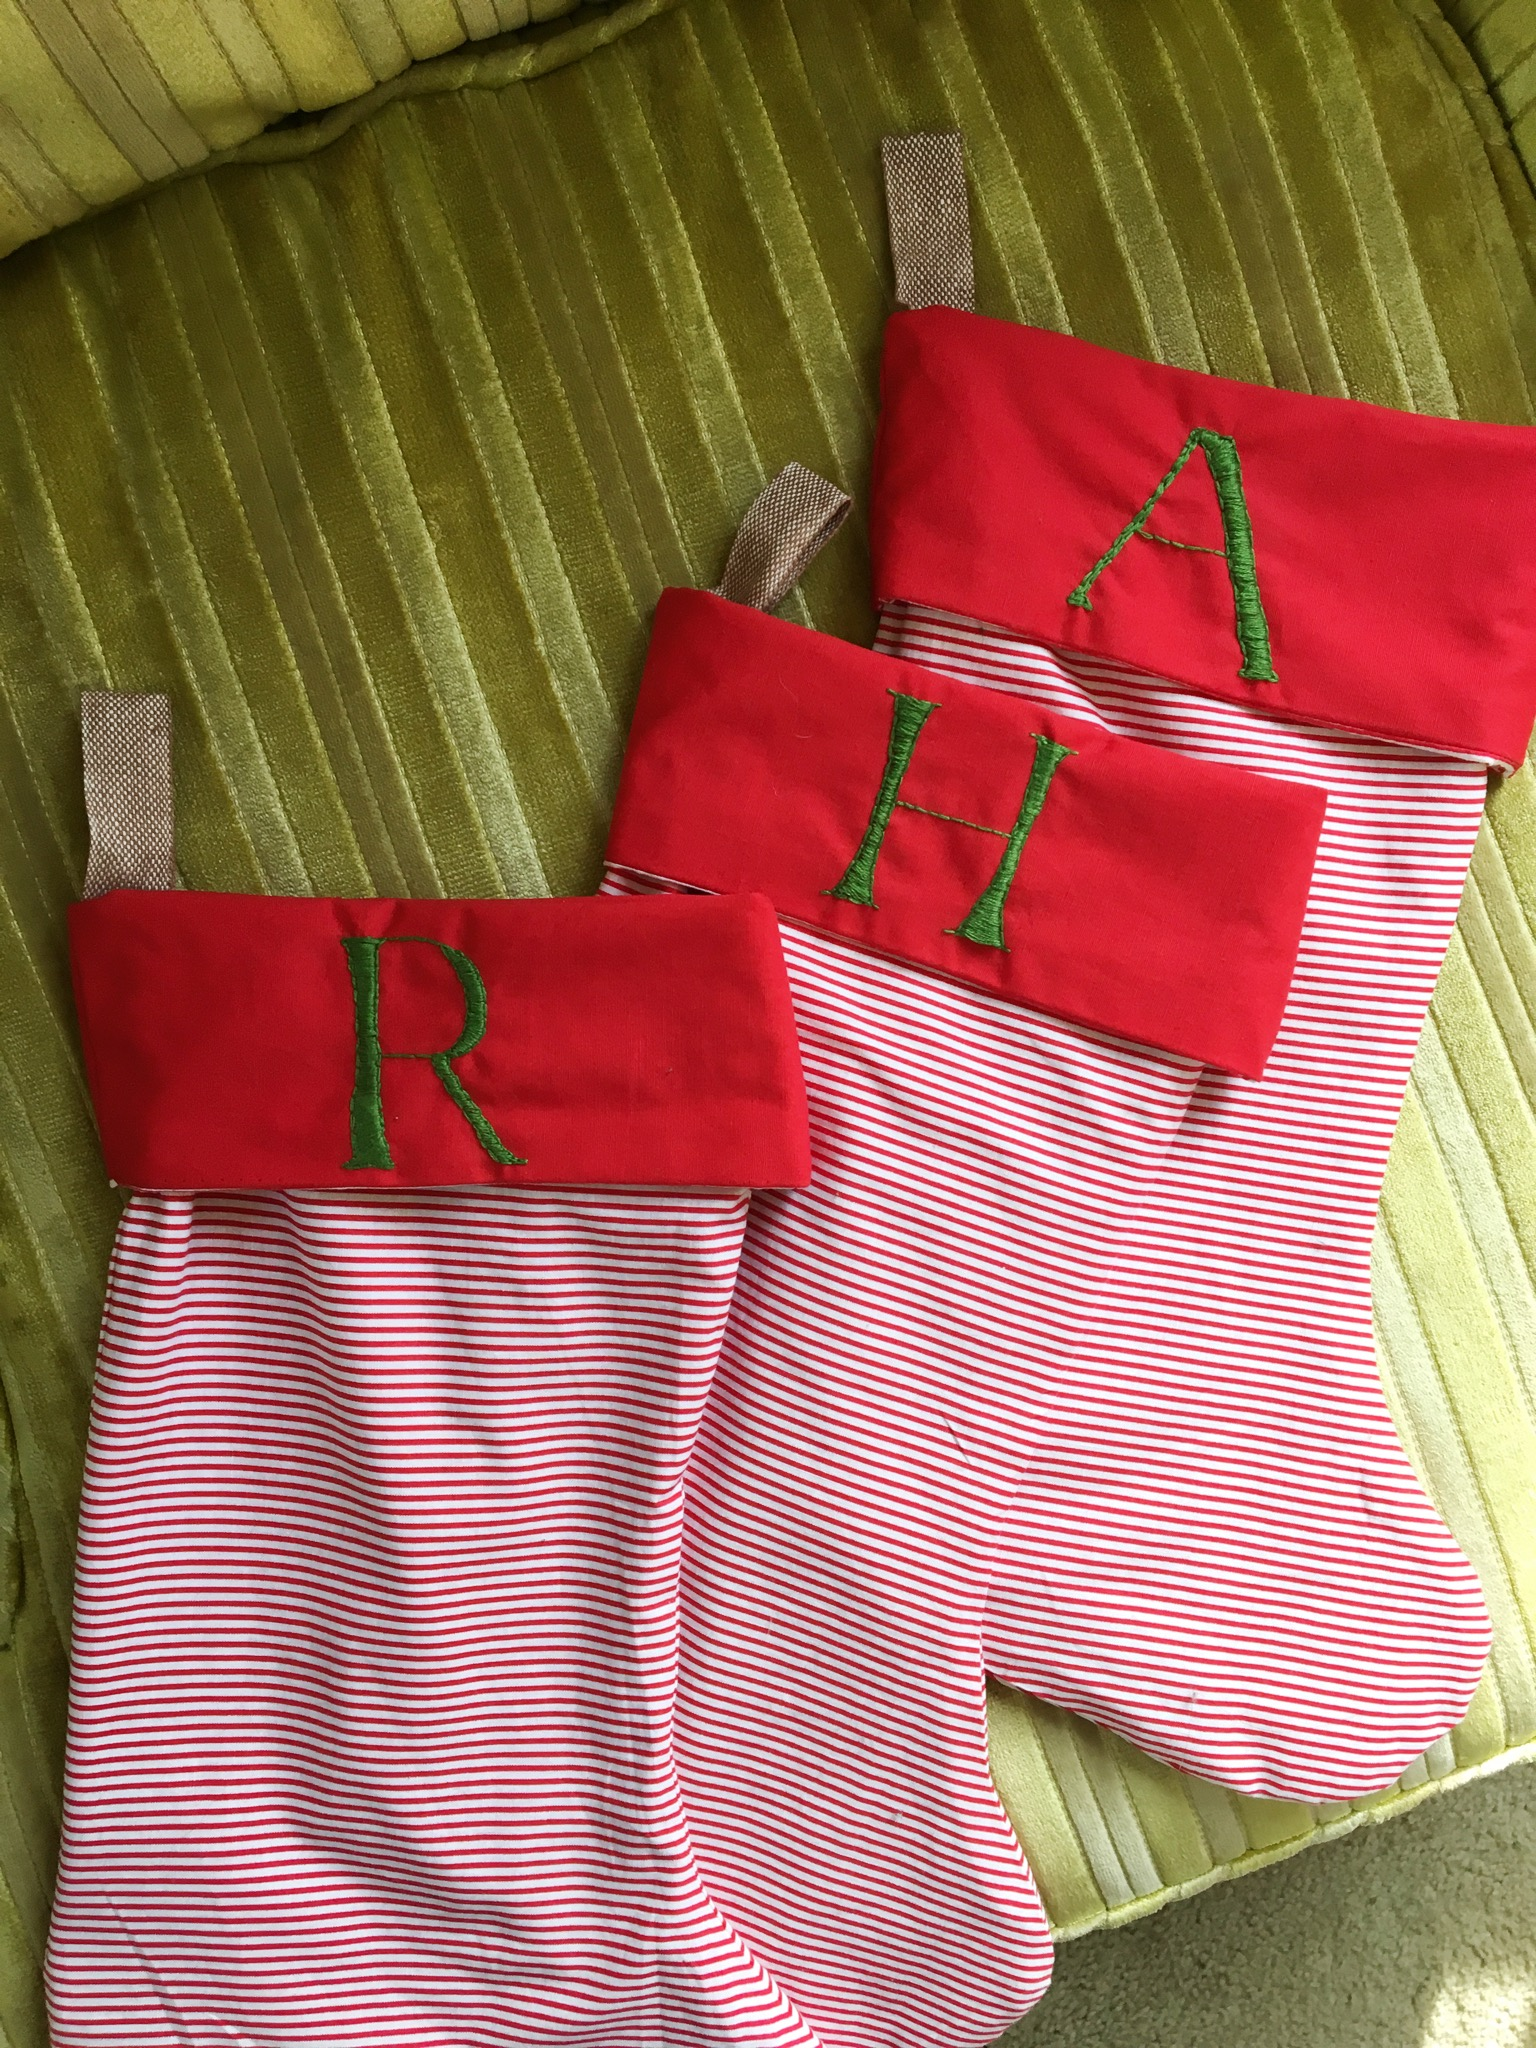 Daly also made stockings for her sweet family and embroidered their initials on them. Palmer wants to follow in her footsteps next year. Do you have stockings? What's their story?